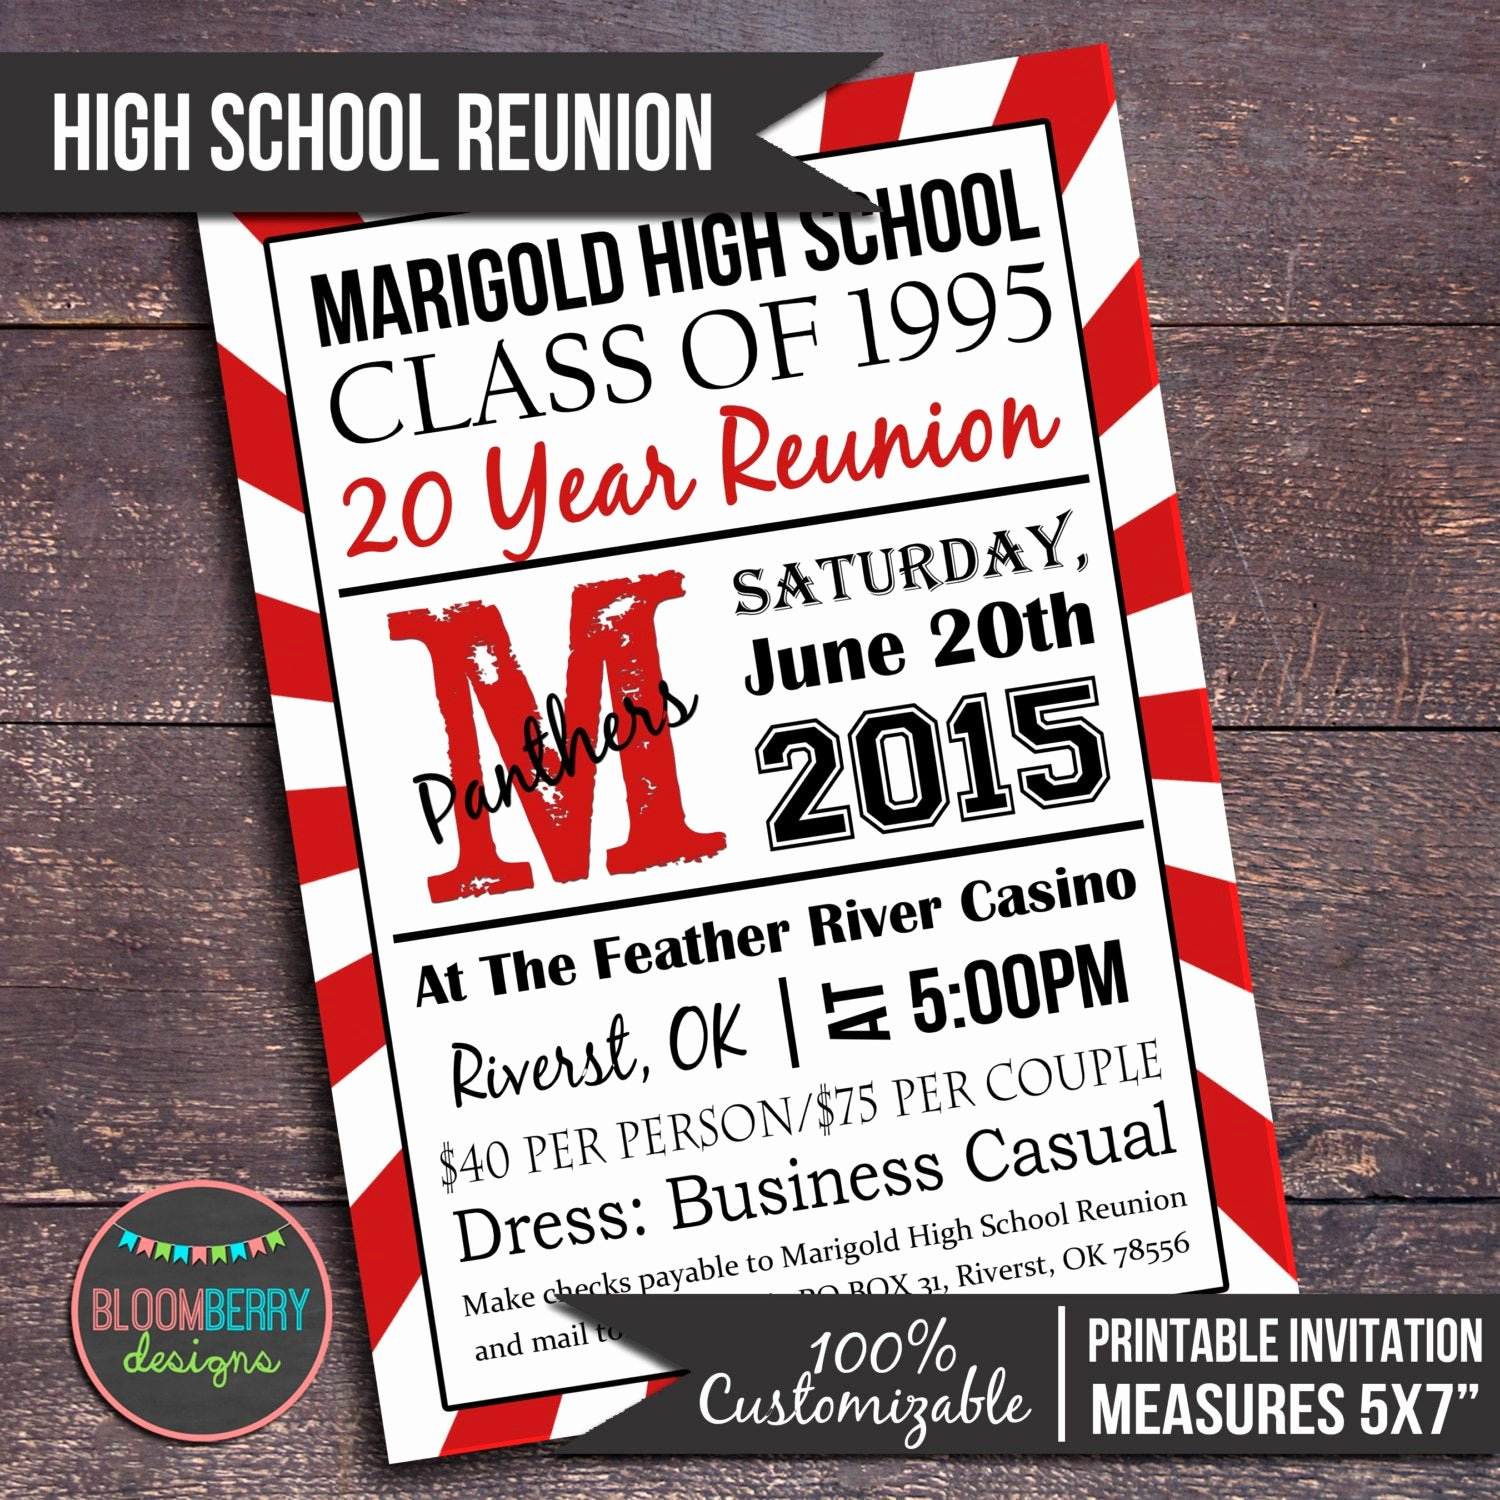 High School Reunion Flyer Luxury High School Reunion Invitation Printable High by Bloomberrydesigns